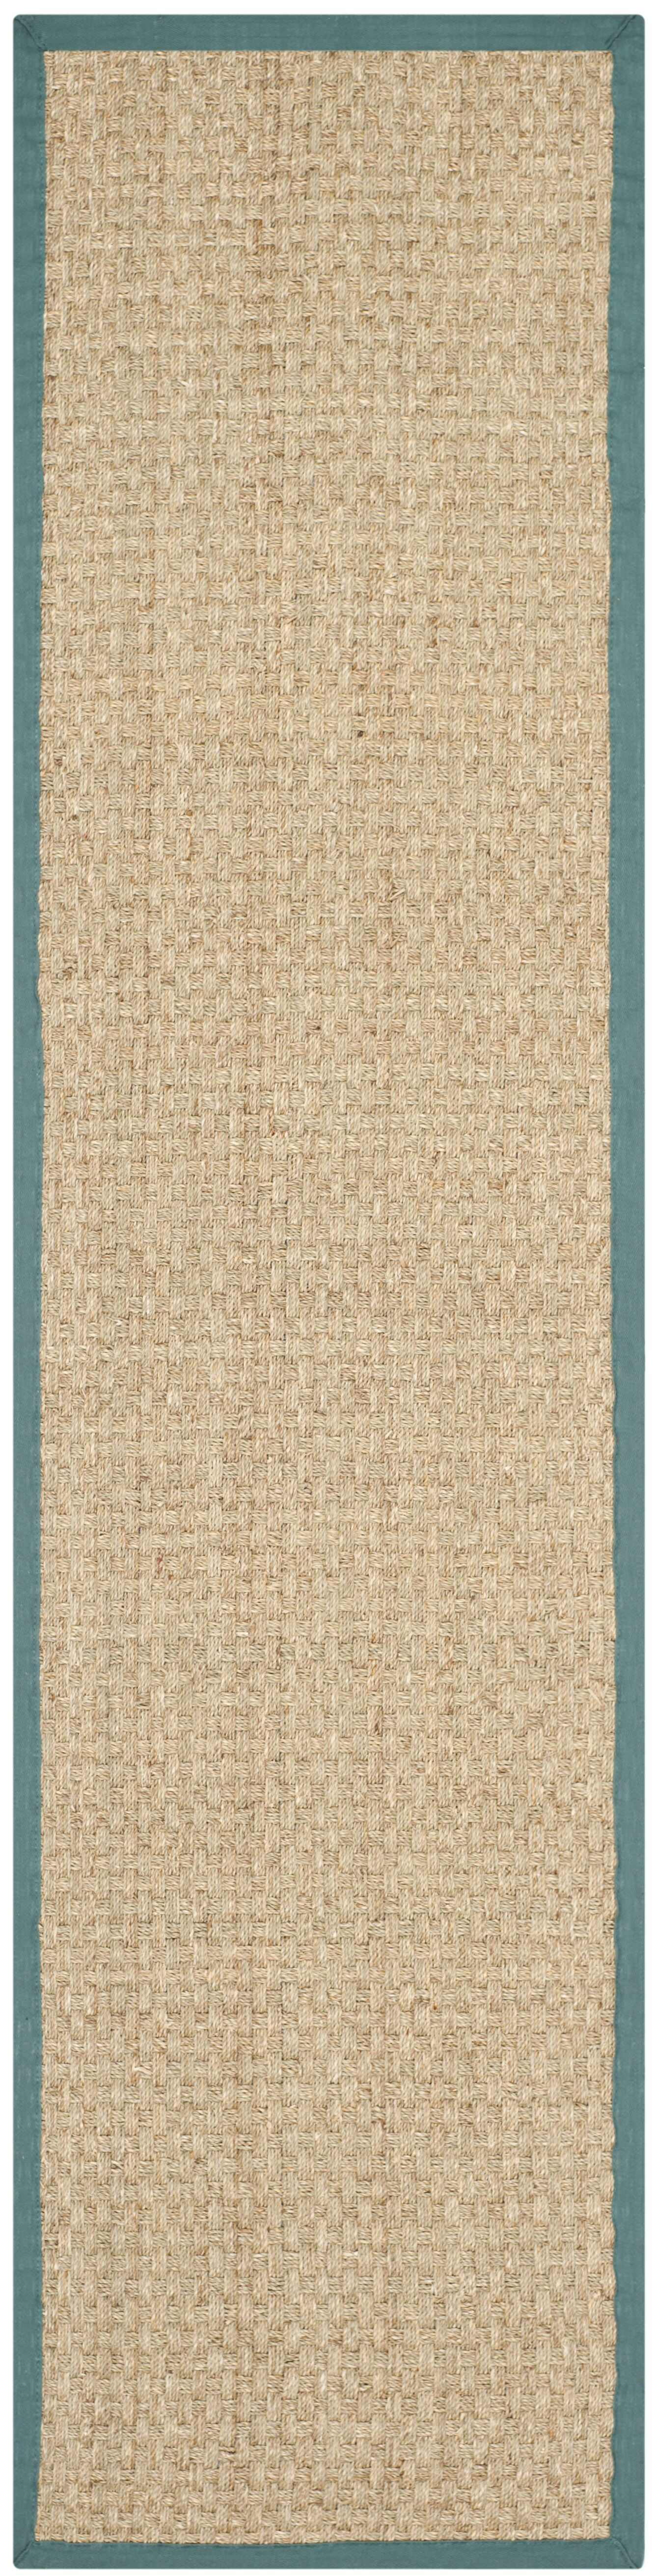 Richmond Natural/Light Blue Area Rug Rug Size: Runner 2'6